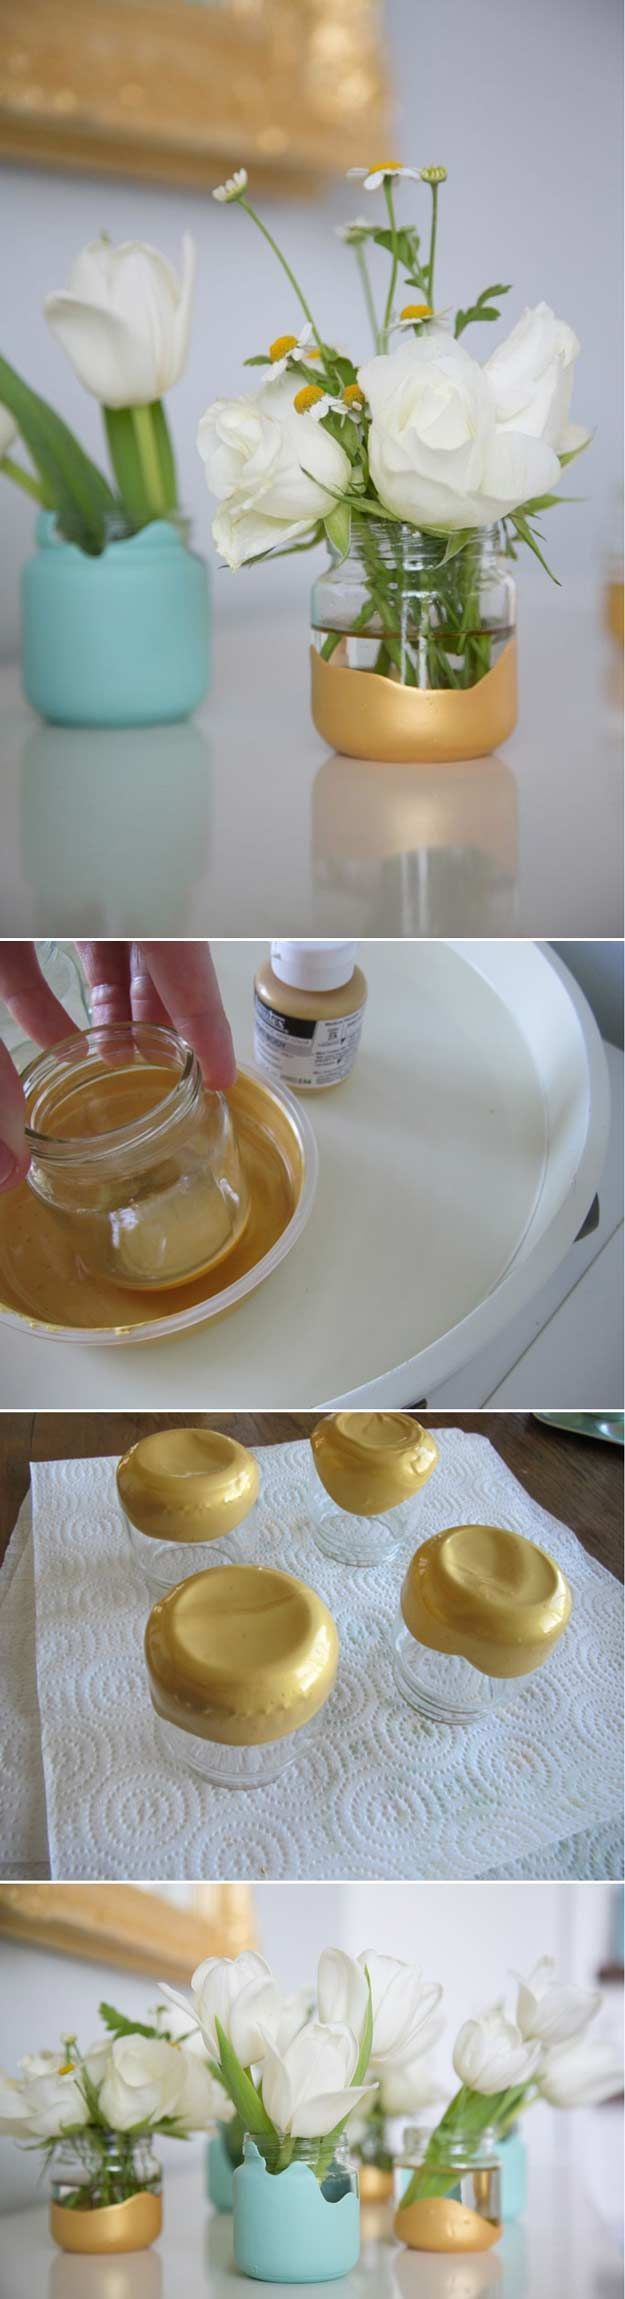 Paint Dipped Baby Food Jar Vases | 23 Clever DIY Uses of Baby Food Jars